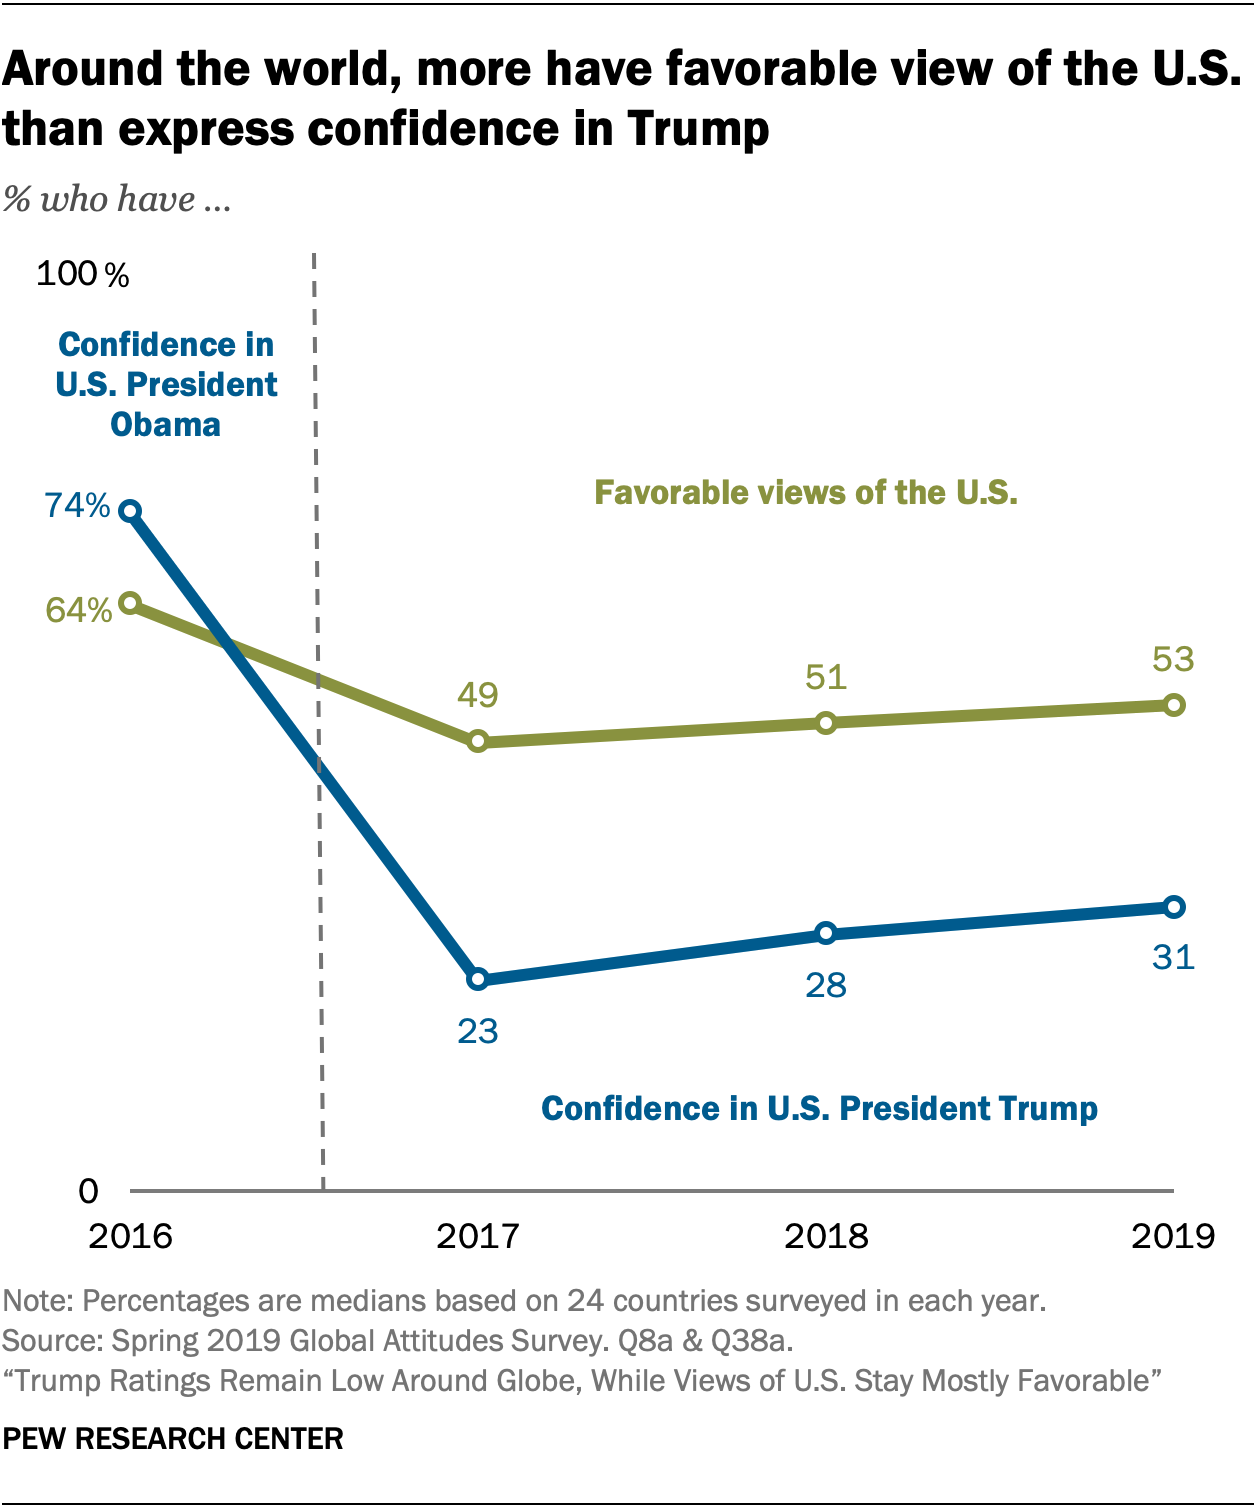 Around the world, more have favorable view of the U.S. than express confidence in Trump